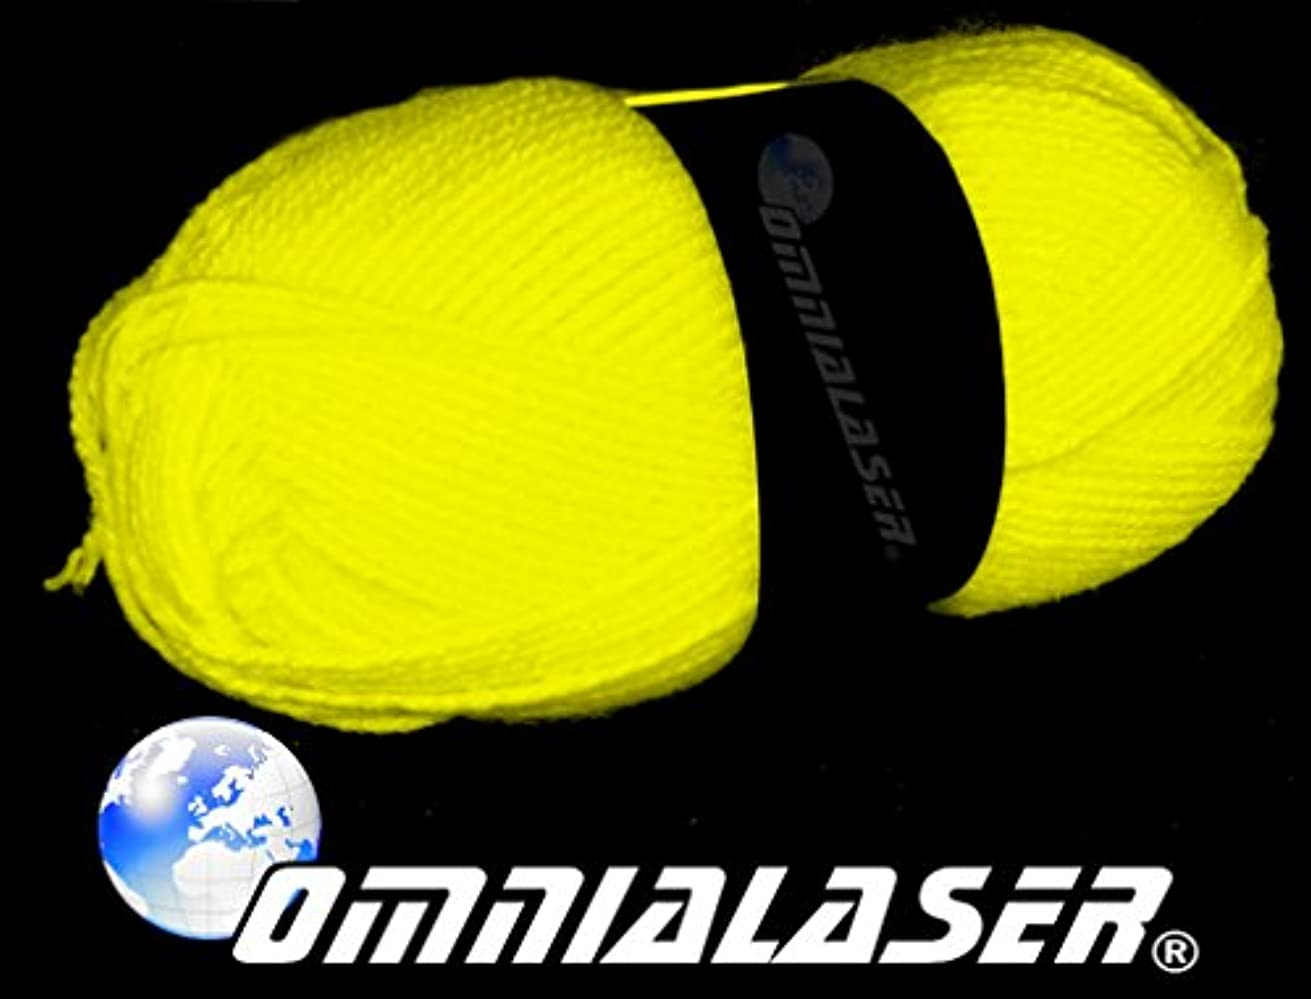 OmniaLaser Light Reagent Wool, yellow